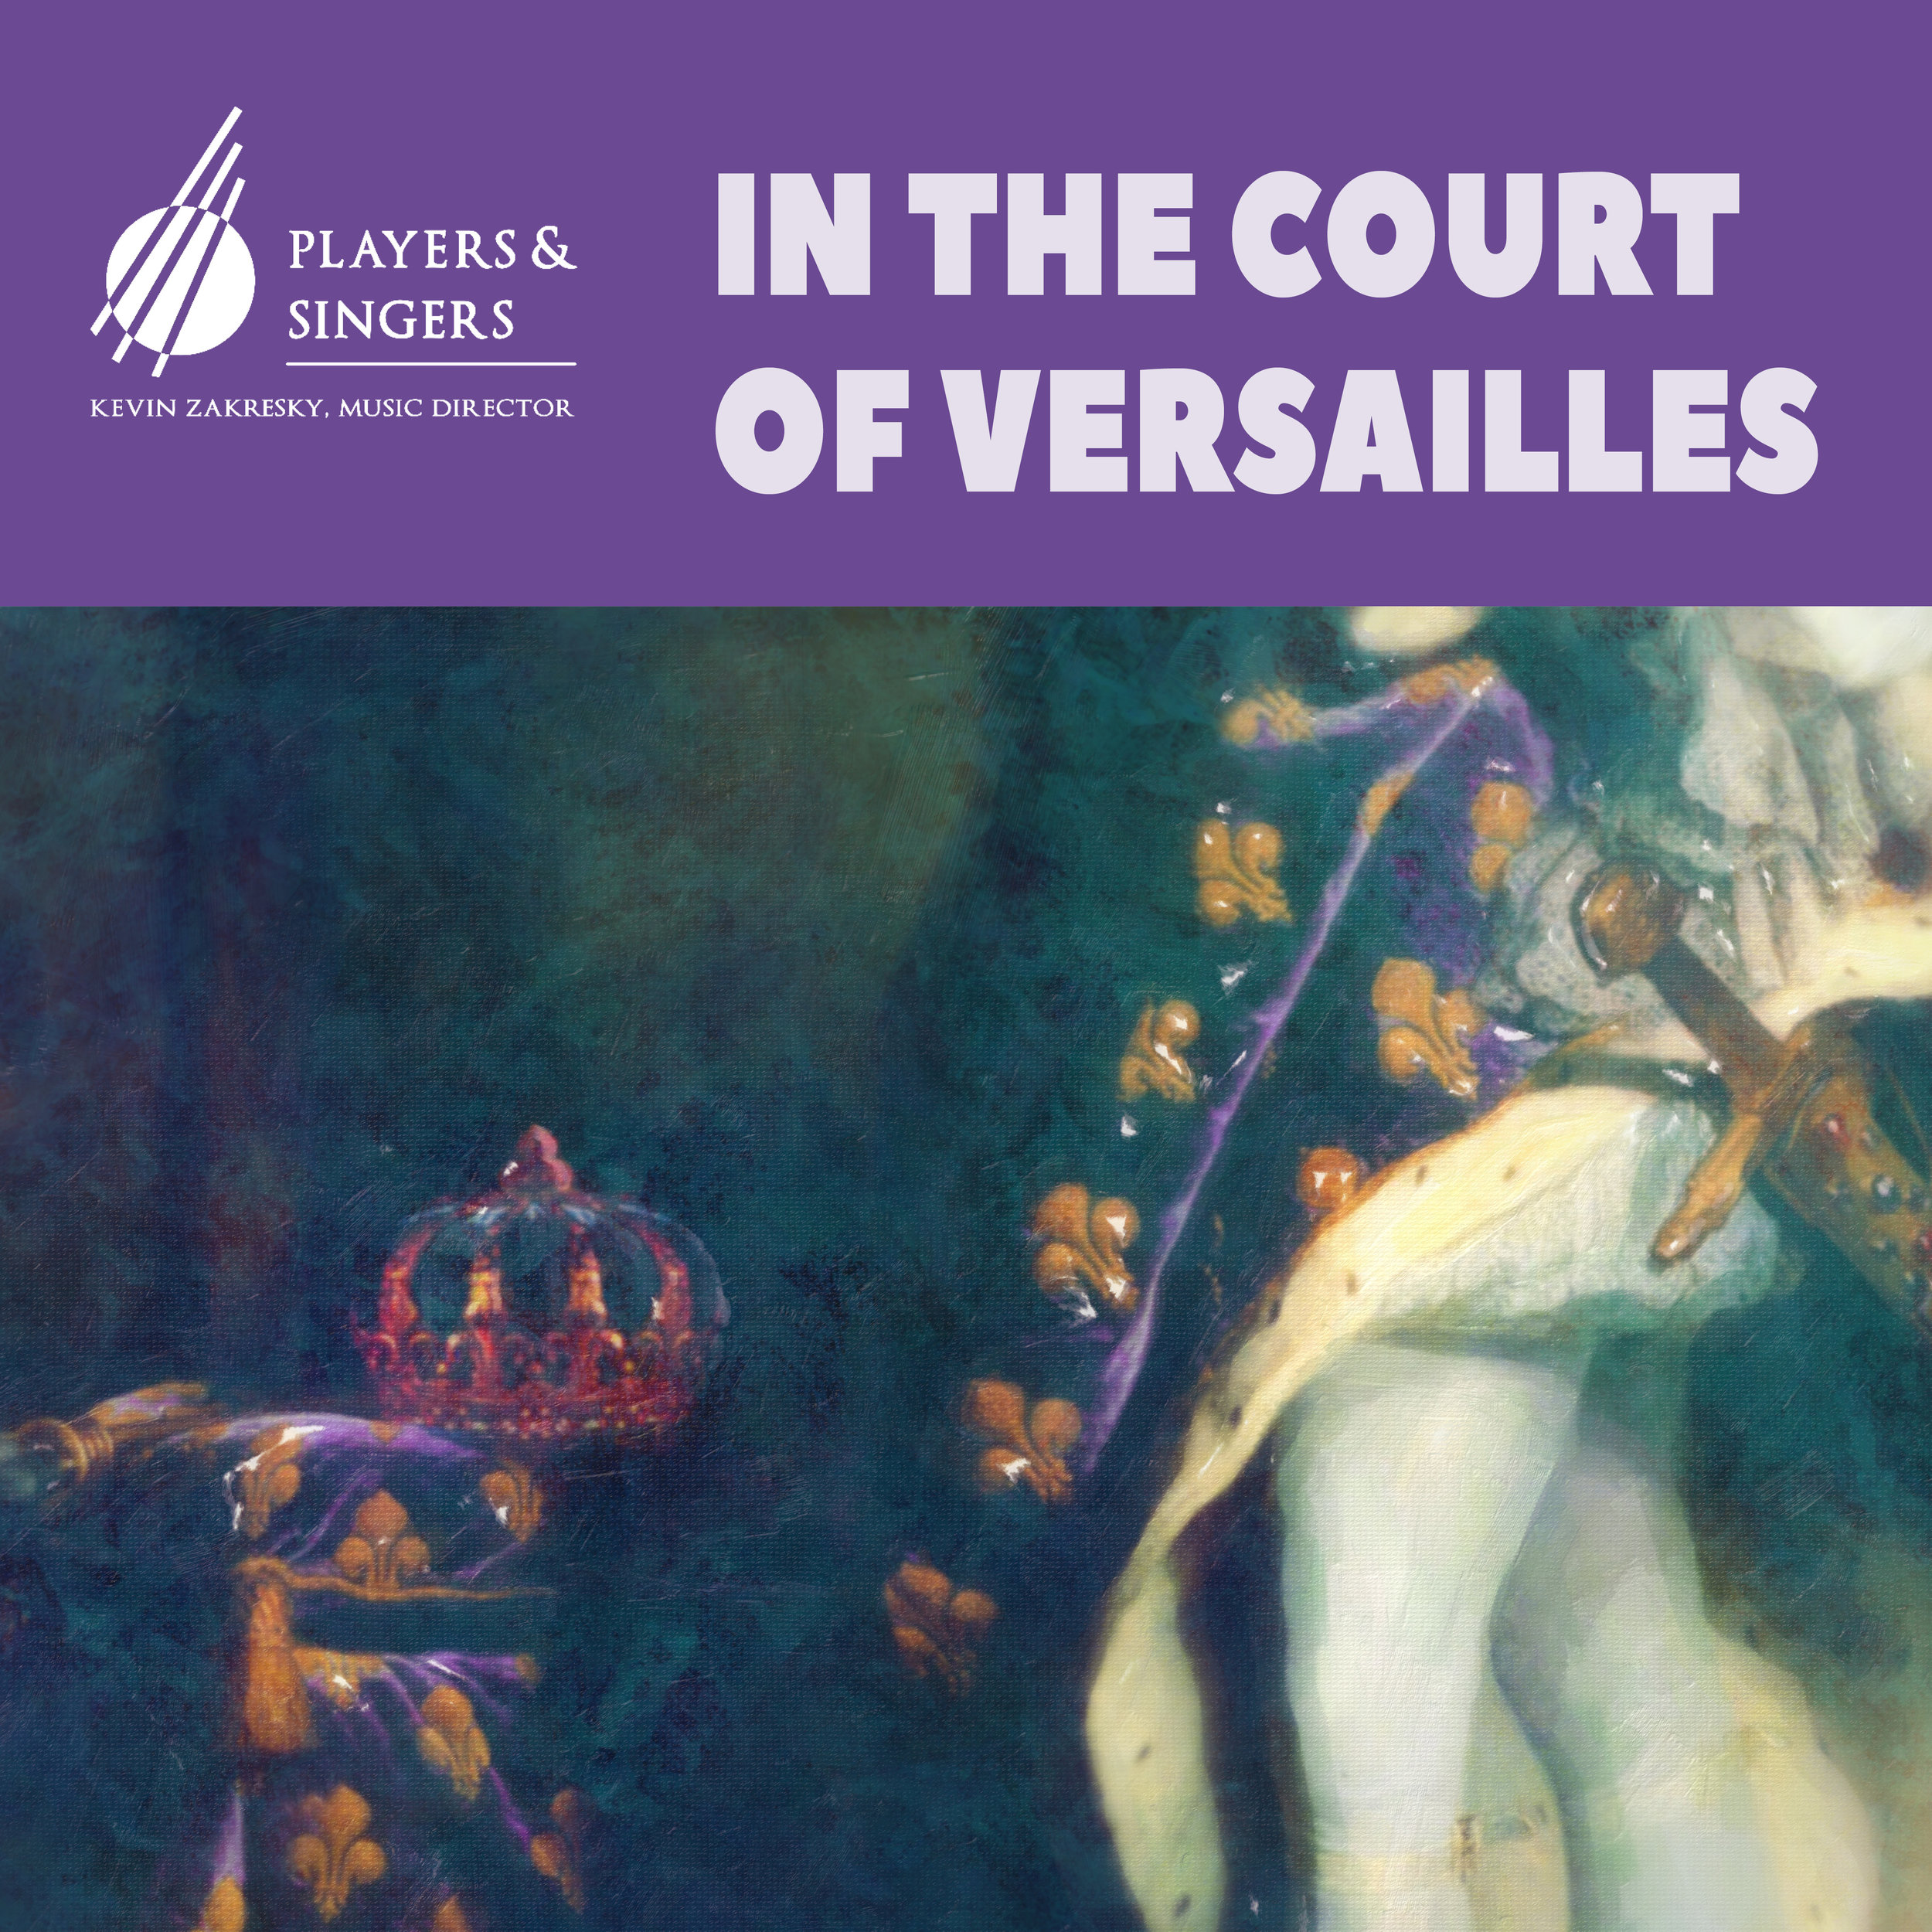 """In the Court of Versailles - Saturday, October 26 - 3pm & 8pmAn evening to celebrate the glory of Louis XIV and the greatest royal court of the 17th-Century.Marc-Antoine Chapentier's opera Les plaisirs de Versailles (The Pleasures of Versailles) premiered in 1682 at the exclusive Les appartements du roi (King's Receptions). In it the characters """"Music"""", """"Gambling"""", """"Pleasure"""" and """"Conversation"""" praise the King and help him relax after coming back from his wars. Jean-Baptiste Lully's earlier 1657 ballet L'amour malade (Love Illness) features Louis as principal dancer, telling the story of his battle with love-sickness and eventual revival through entertainment."""